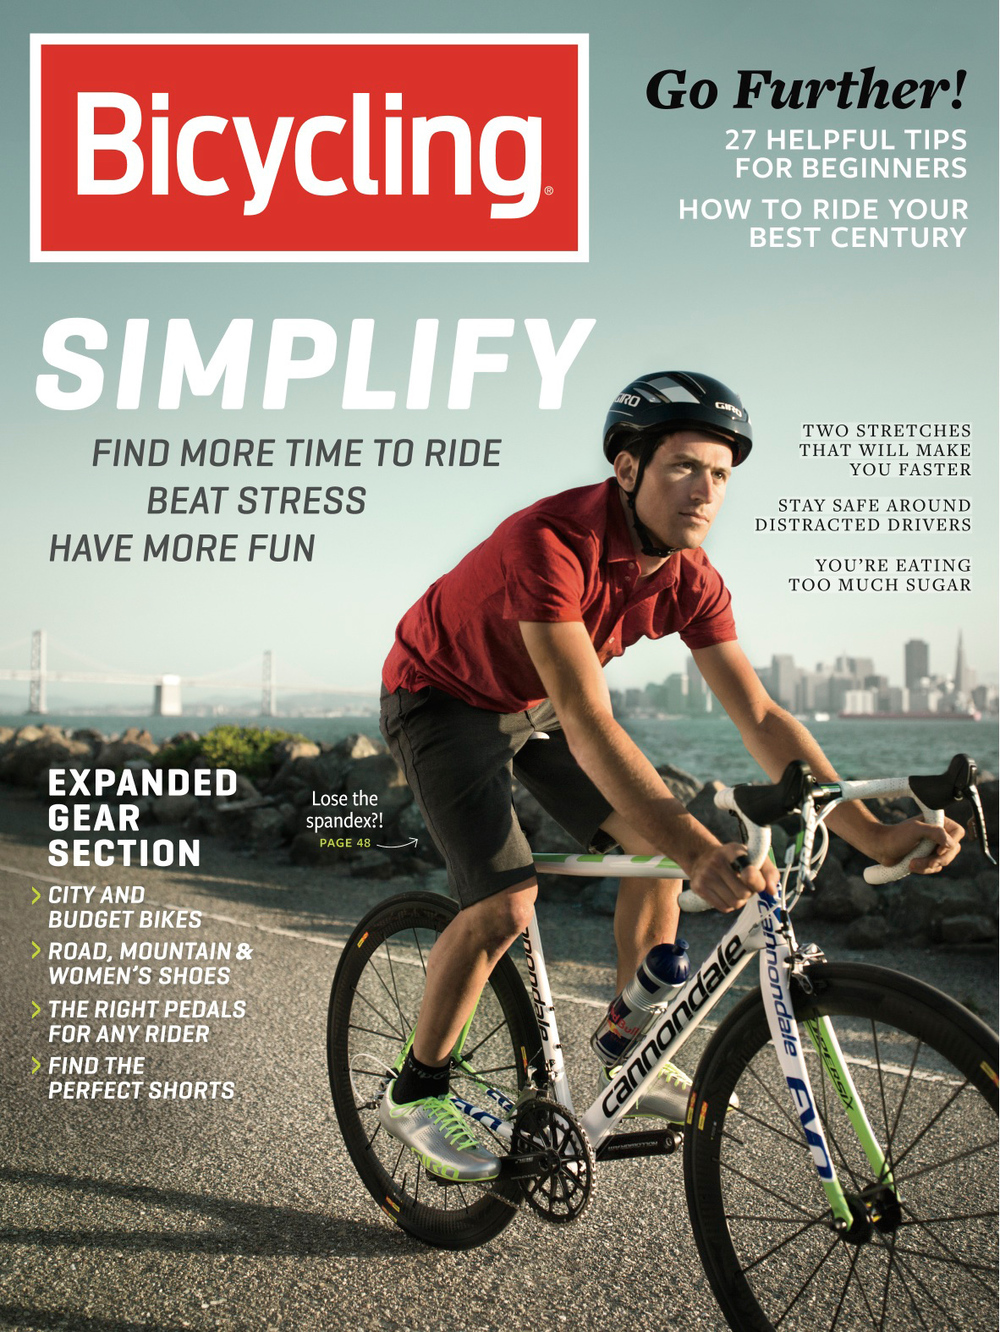 Bicycling Magazine September 2013 Cover